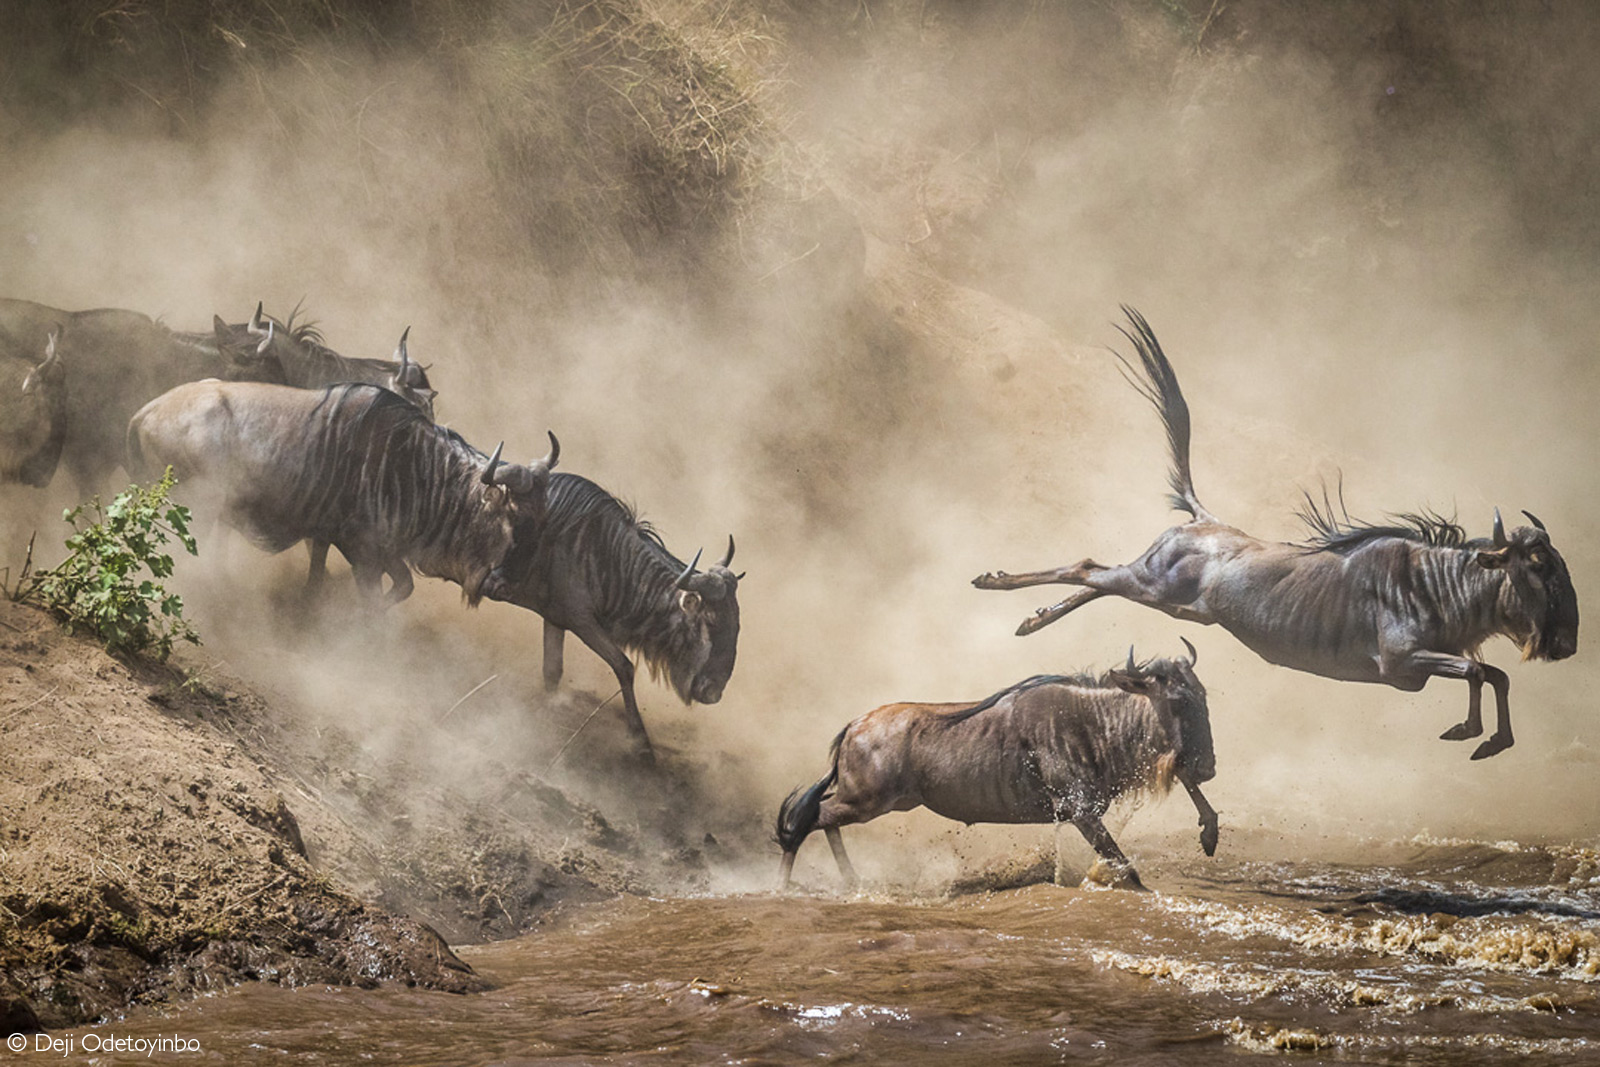 Migrating wildebeest – nature's most accomplished endurance athletes – soar through shadows and dust as the hurl themselves into the Mara River. The few minutes required for this crossing are the most perilous of their hazardous, 800-kilometre trek. Mara Triangle, Kenya © Deji Odetoyinbo